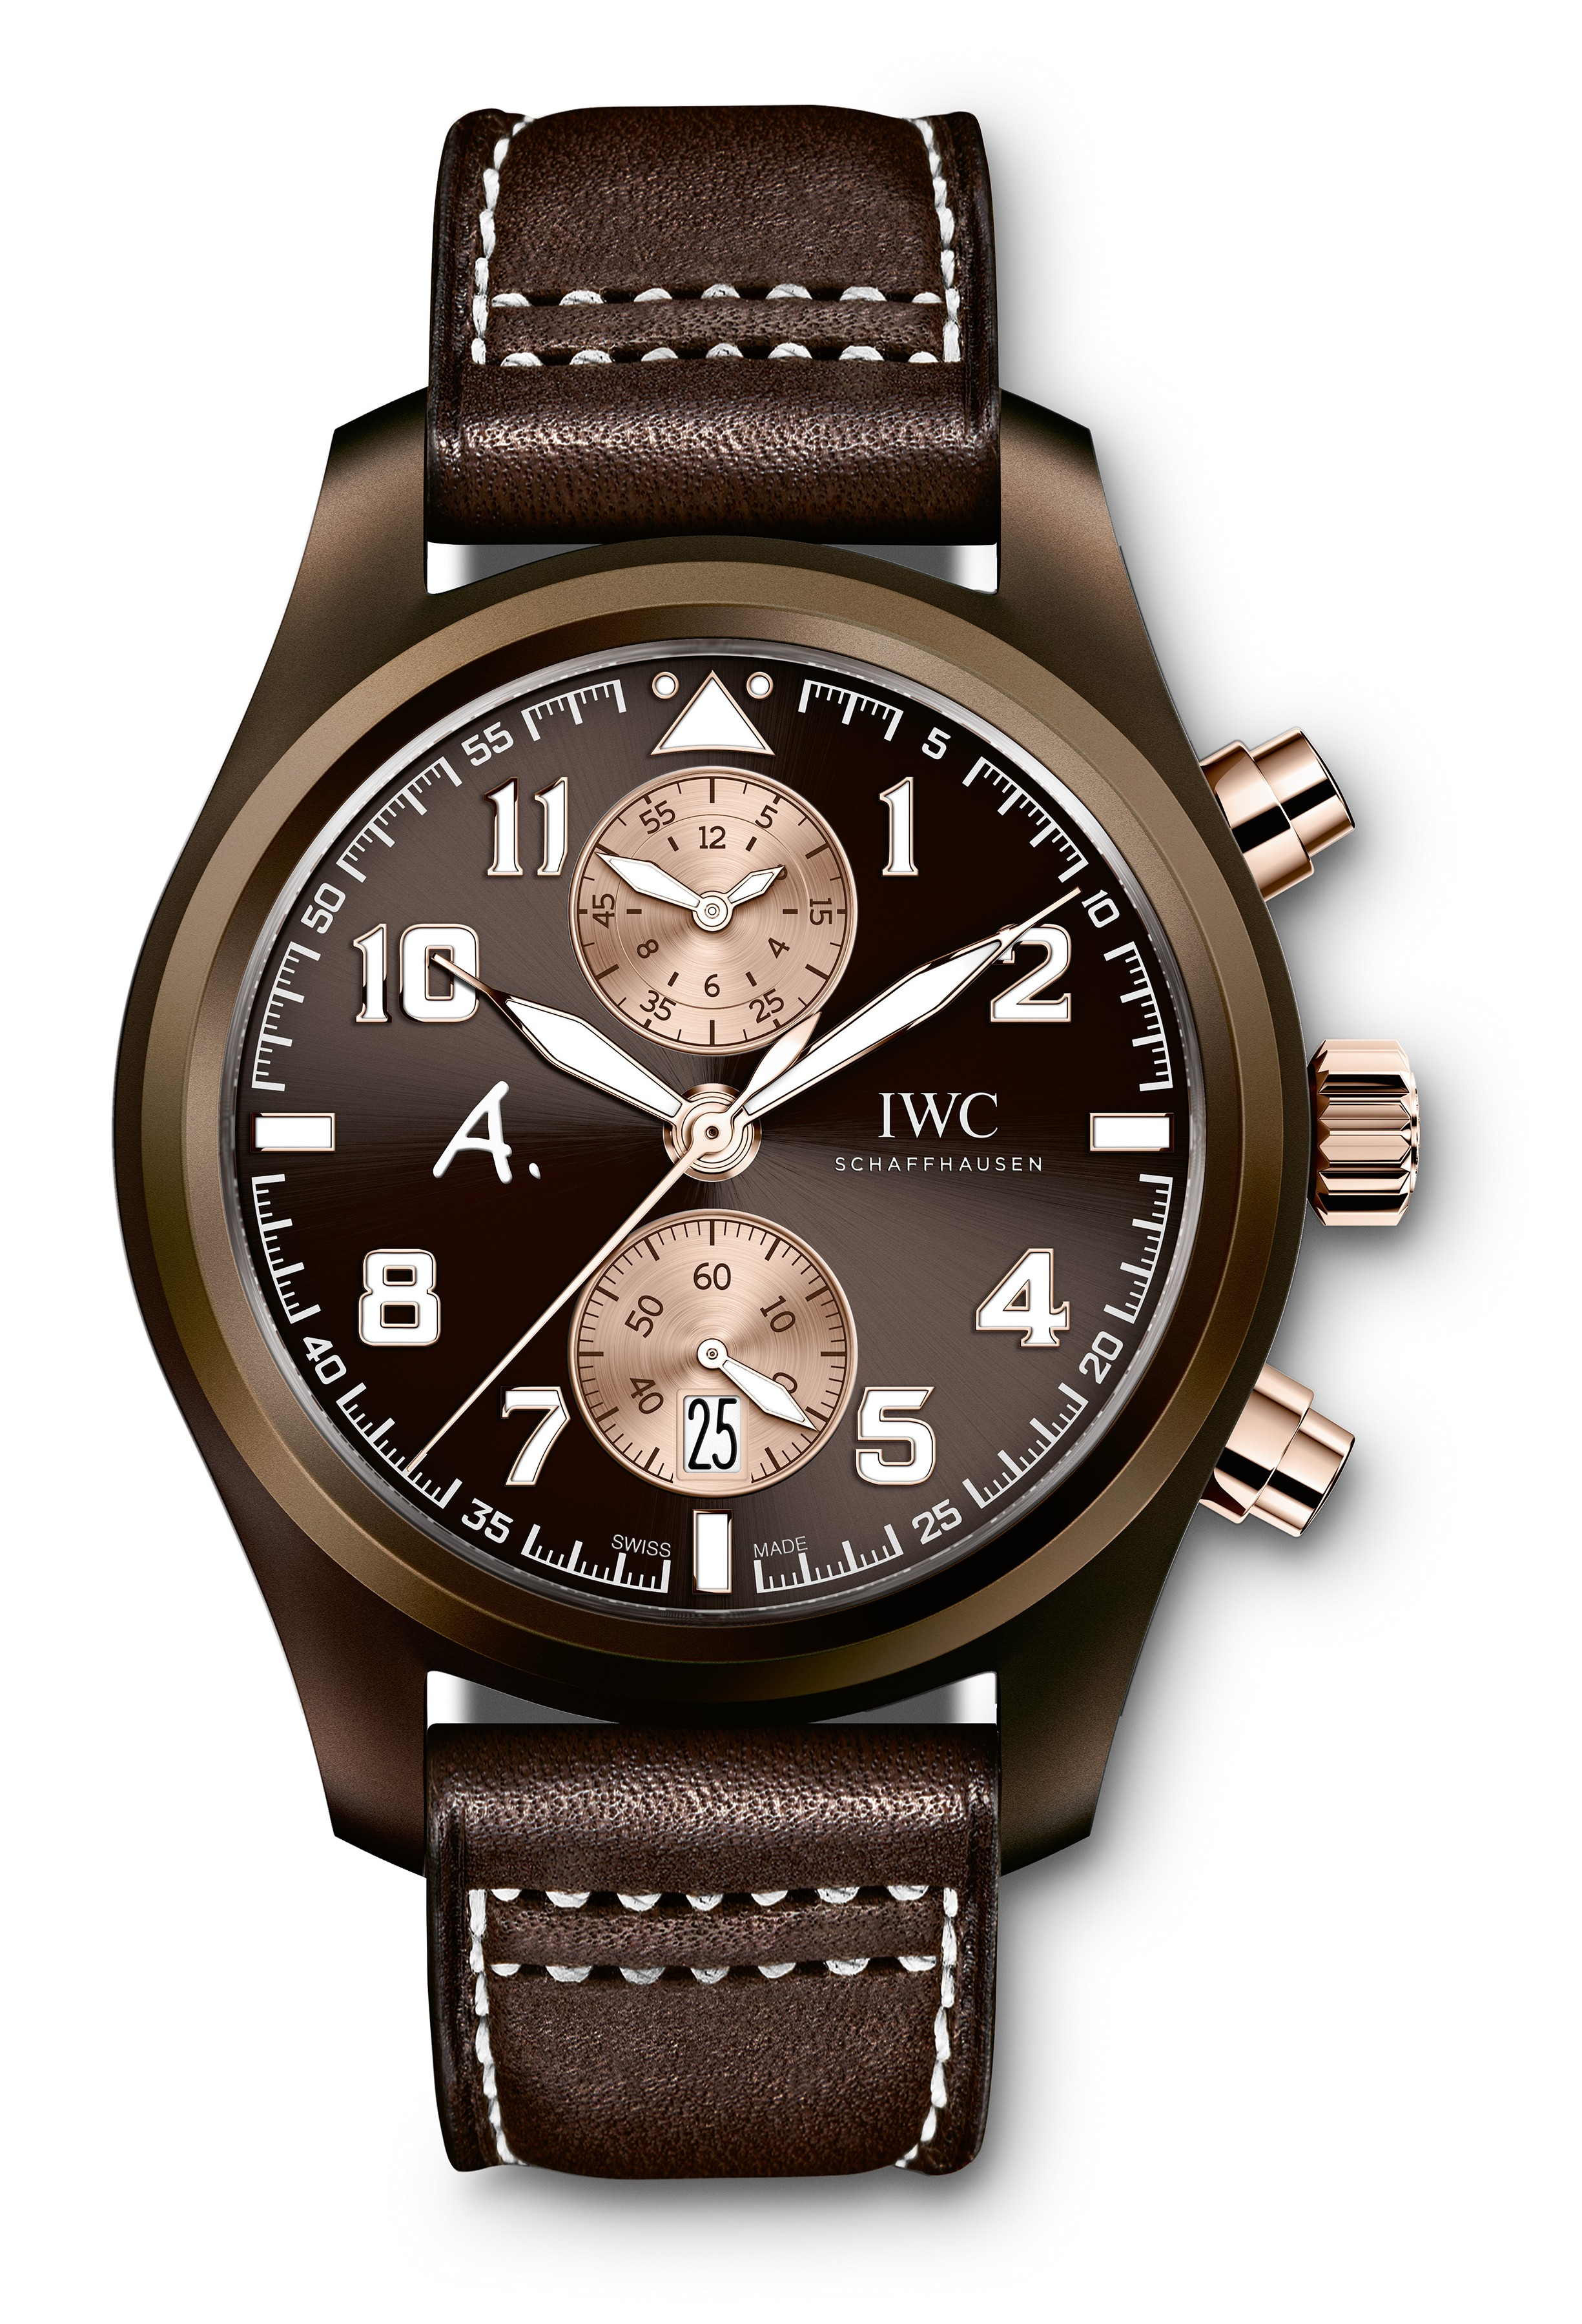 Iwc Pilot Reference 3880 Price